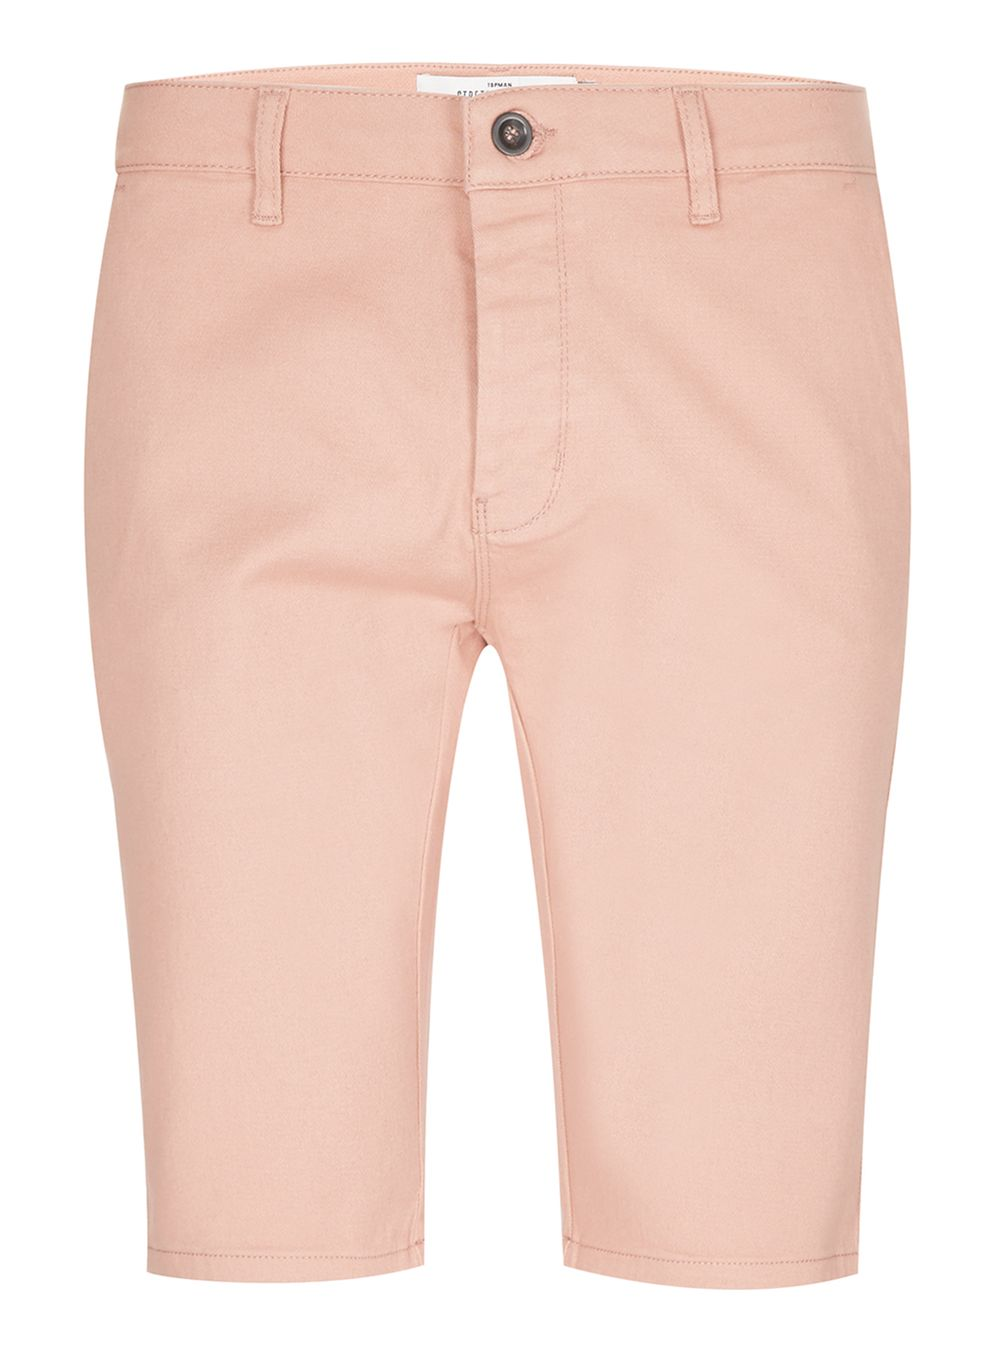 Topman Pink Stretch Skinny Chino Shorts